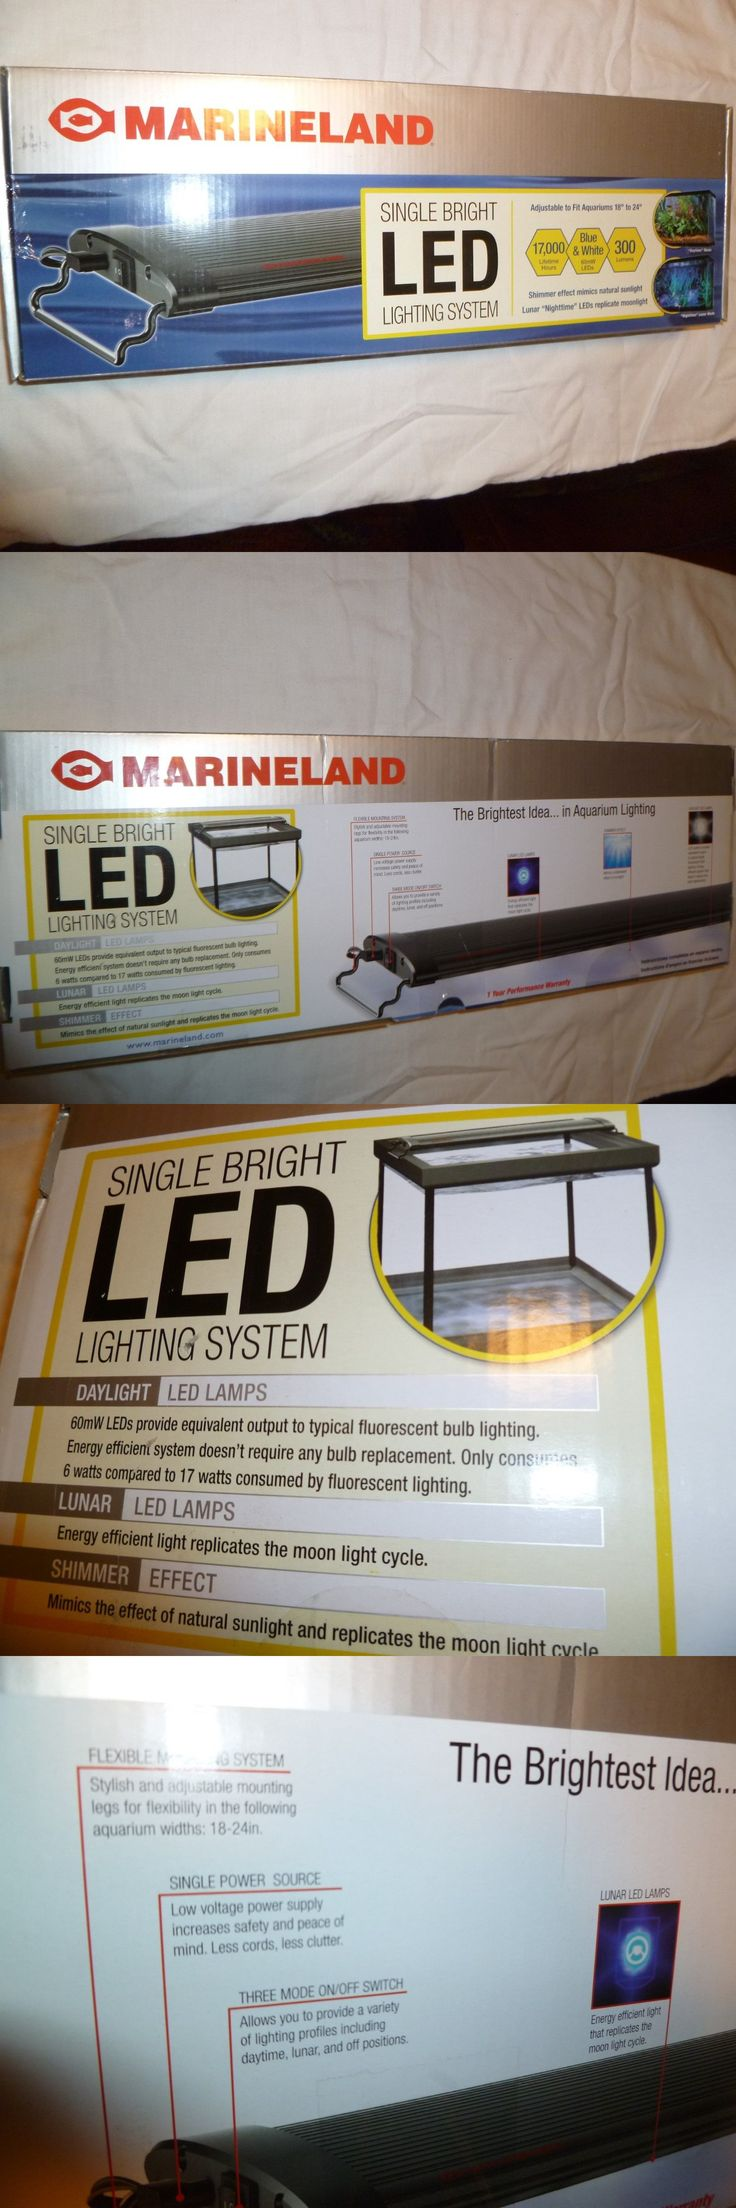 Animals Fish And Aquariums: Marineland Aquarium Led Lighting Blue And White Single Bright Light 18 To 24 In -> BUY IT NOW ONLY: $35 on eBay!